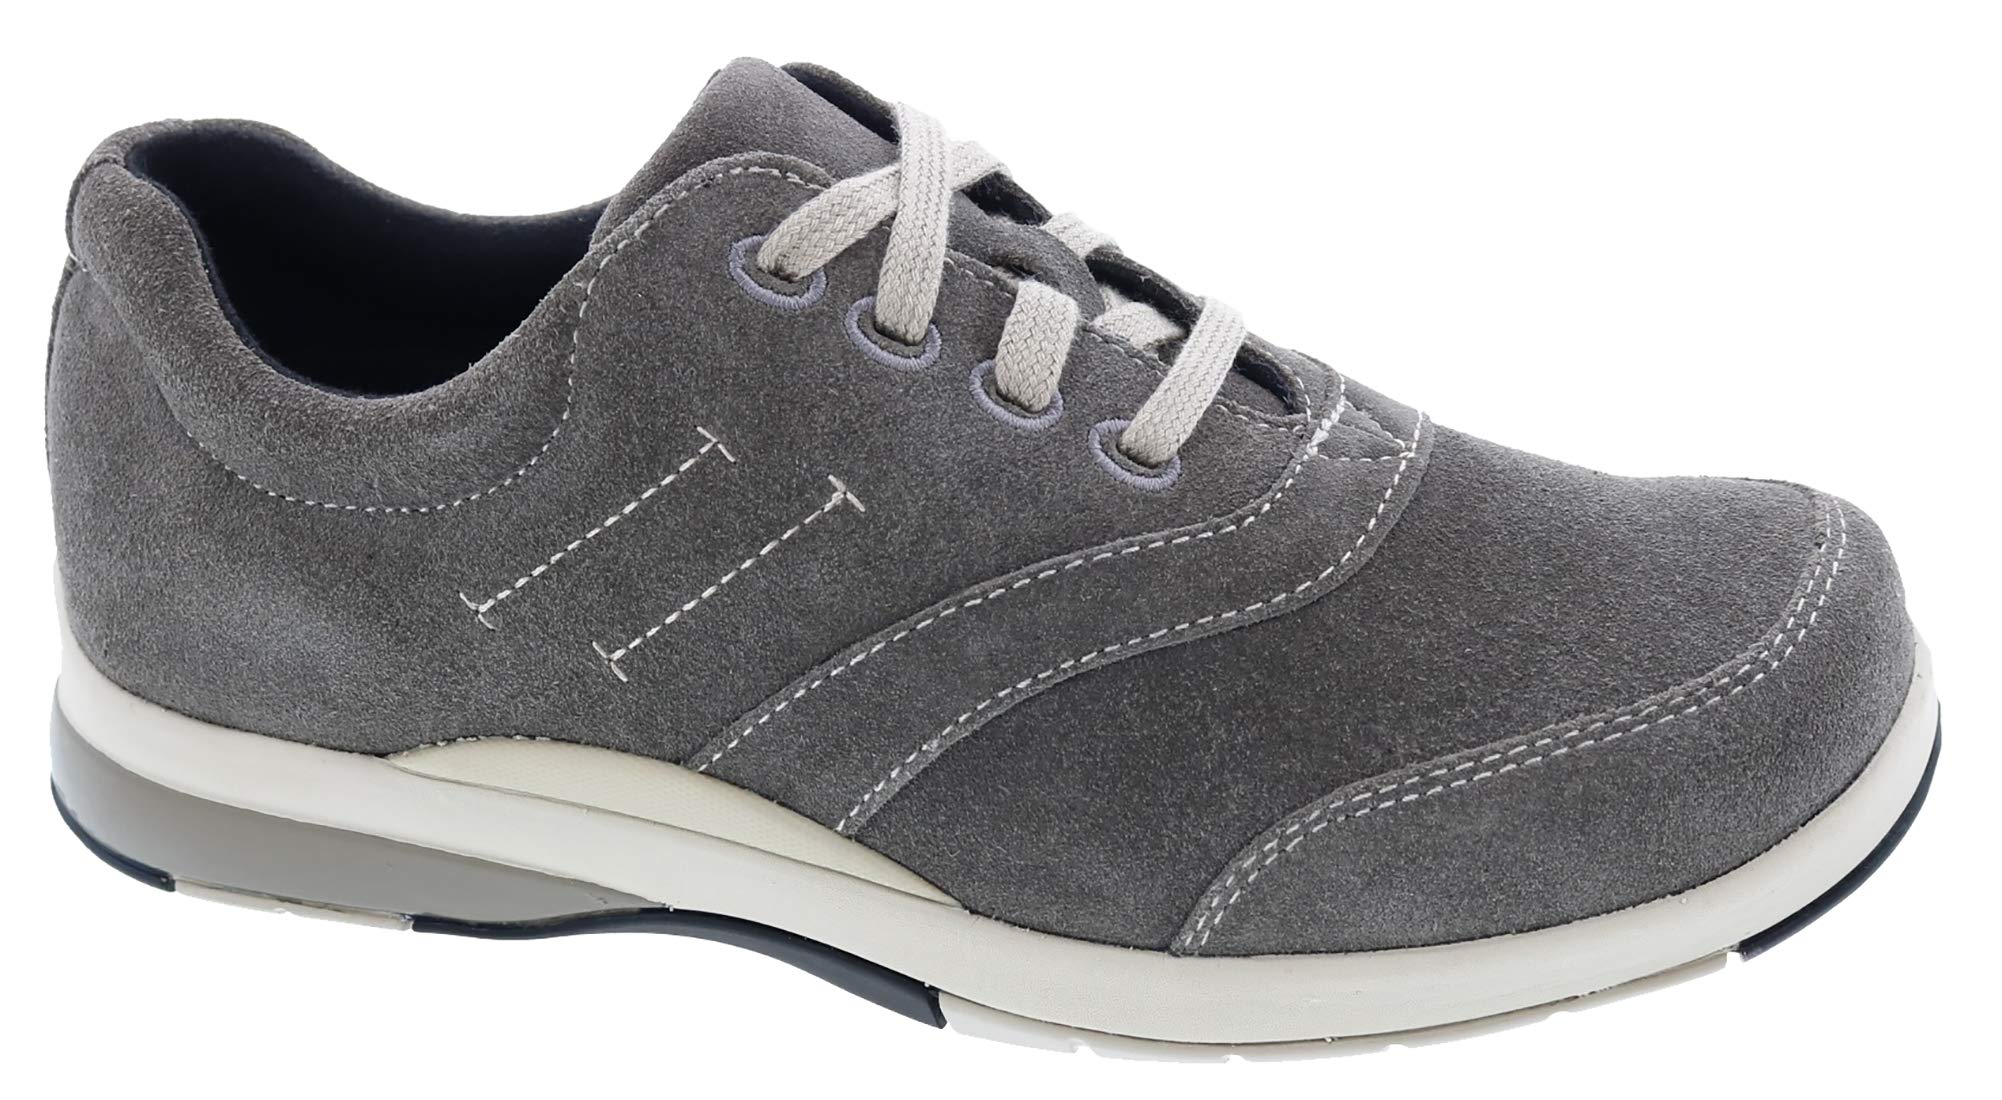 Drew Woman Columbia 10829 Grey/Suede/Leather Suede 8.5 Wide (D) US by Drew Shoe